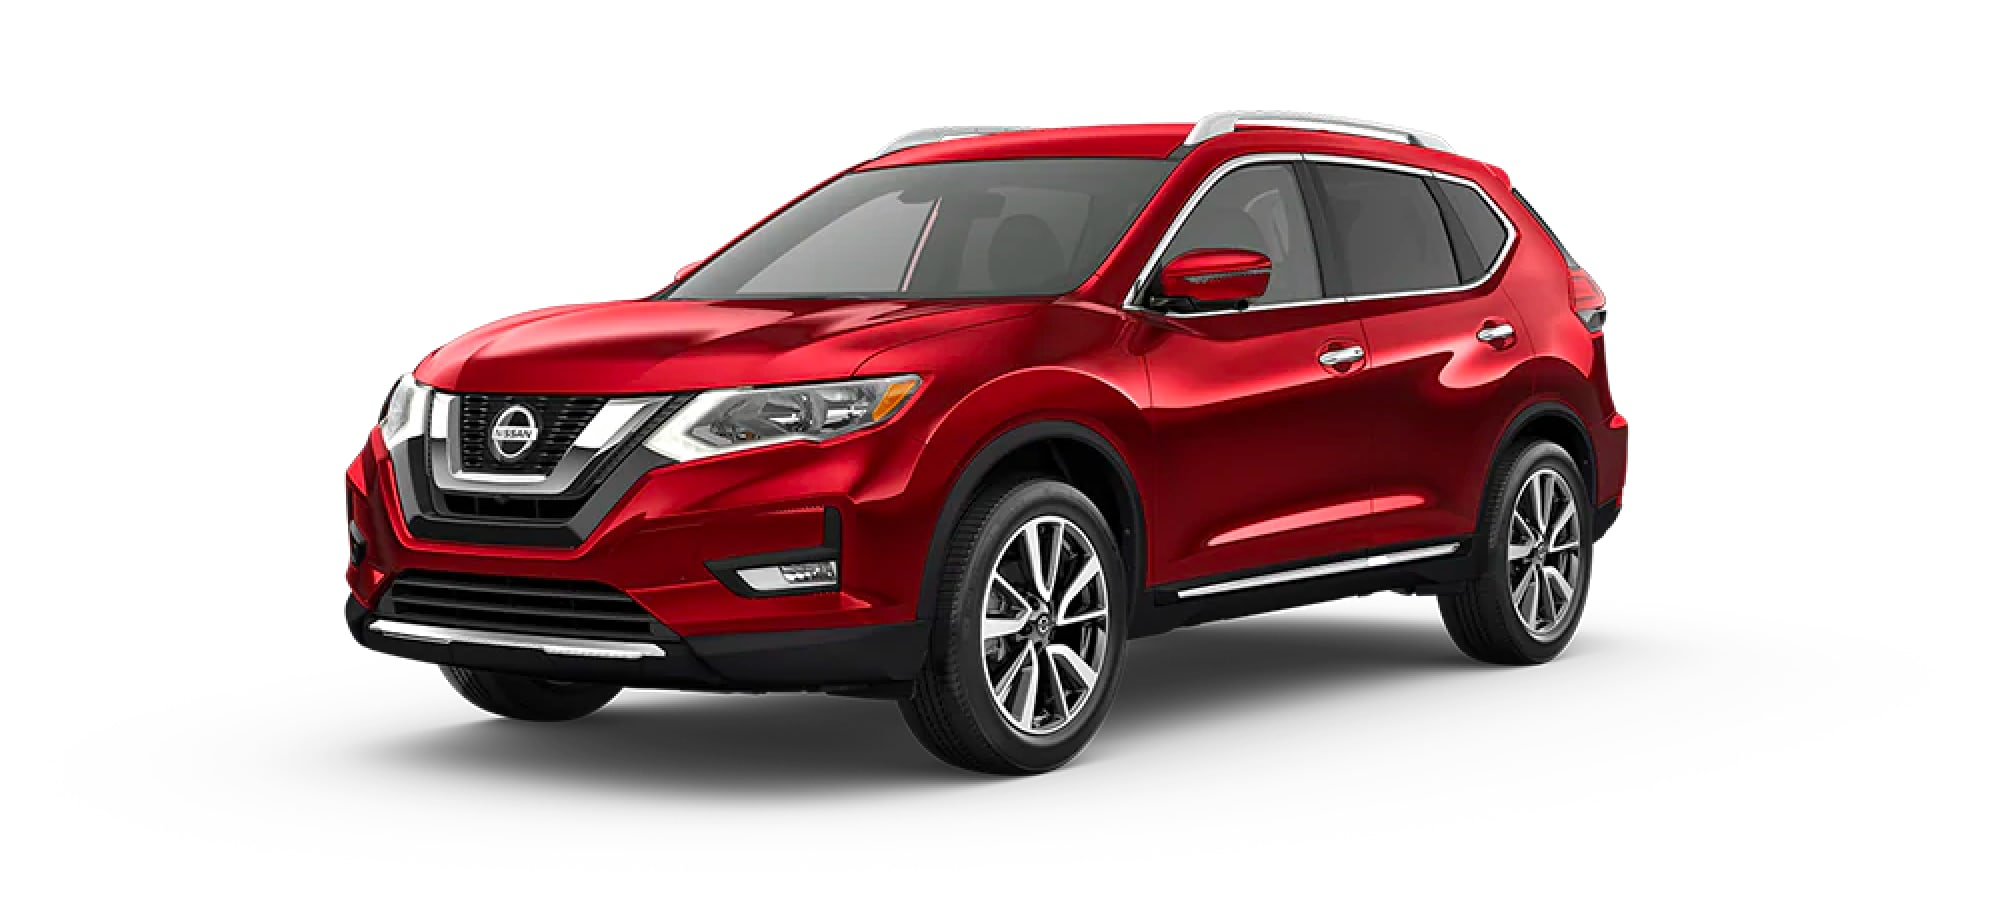 2020 Nissan Rogue in Cayenne Red Metallic